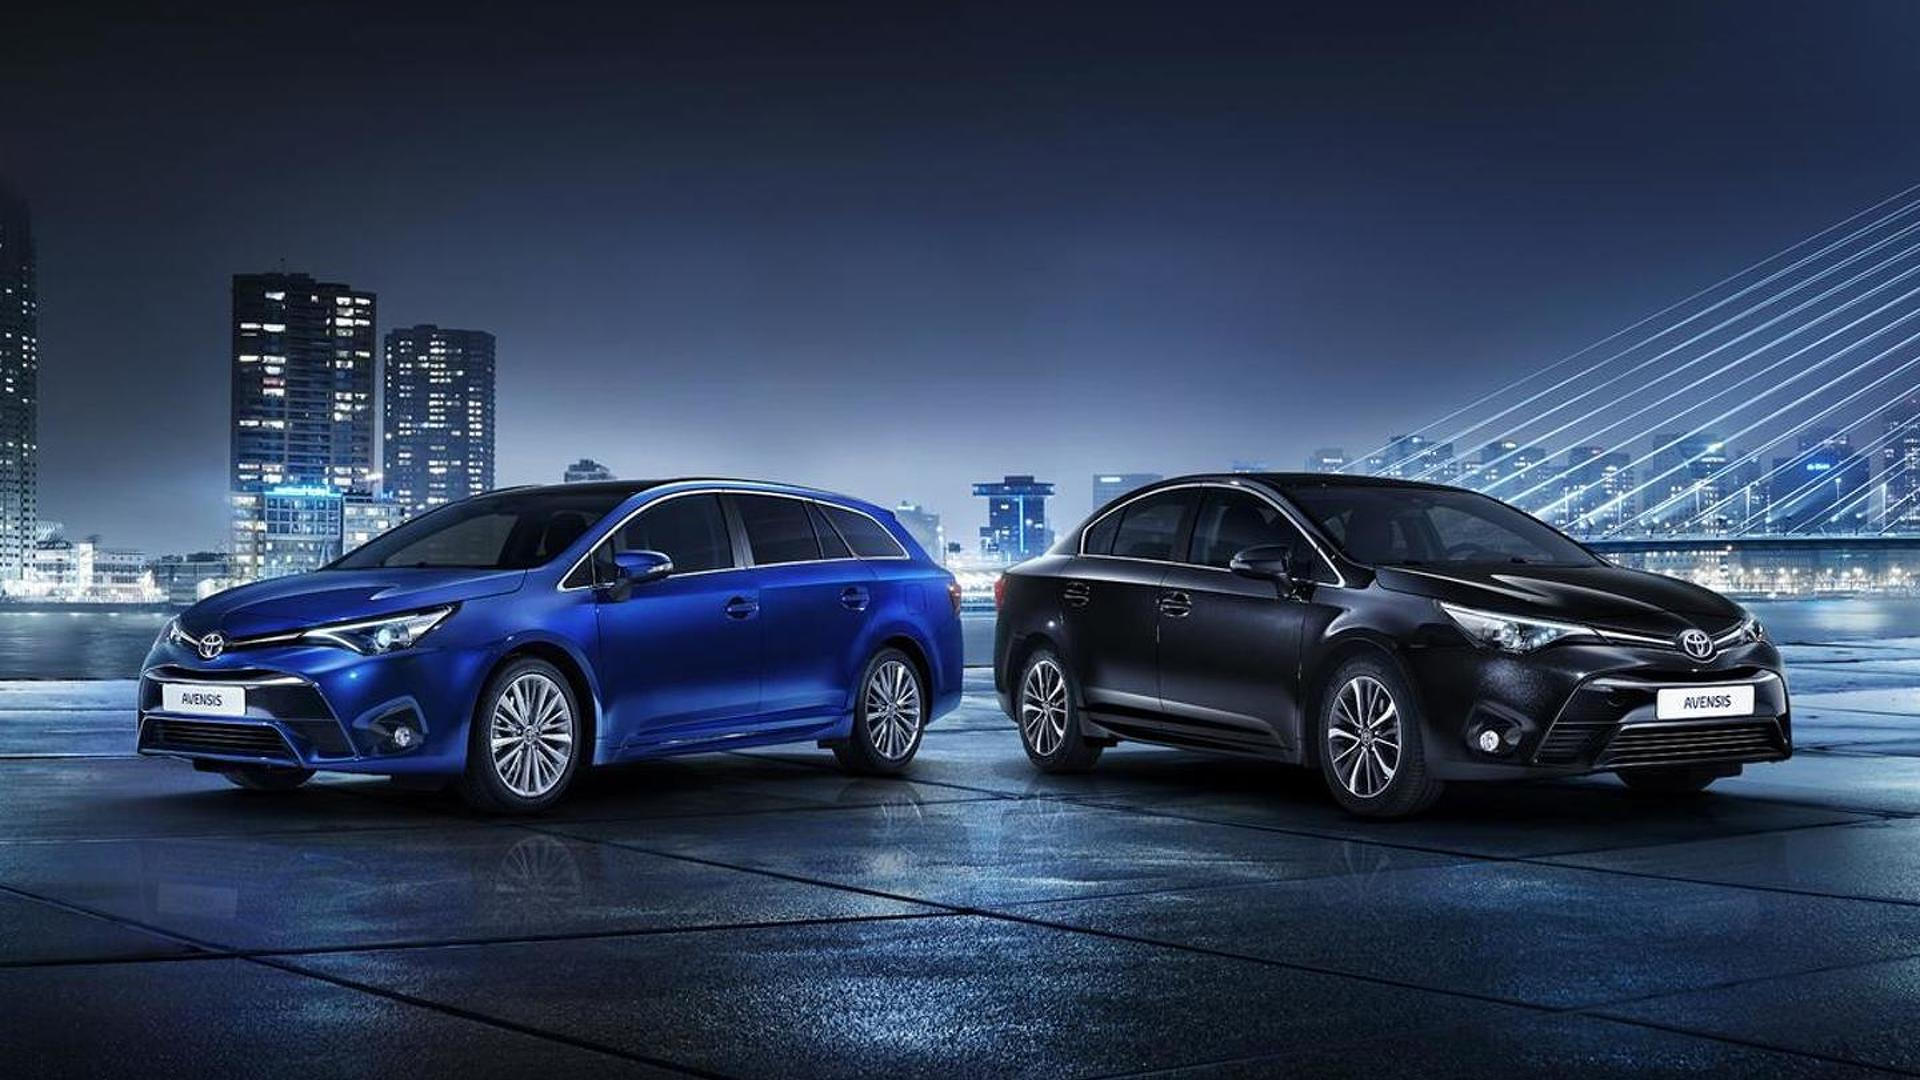 2015 Toyota Avensis launched in Geneva with cosmetic and mechanical upgrades